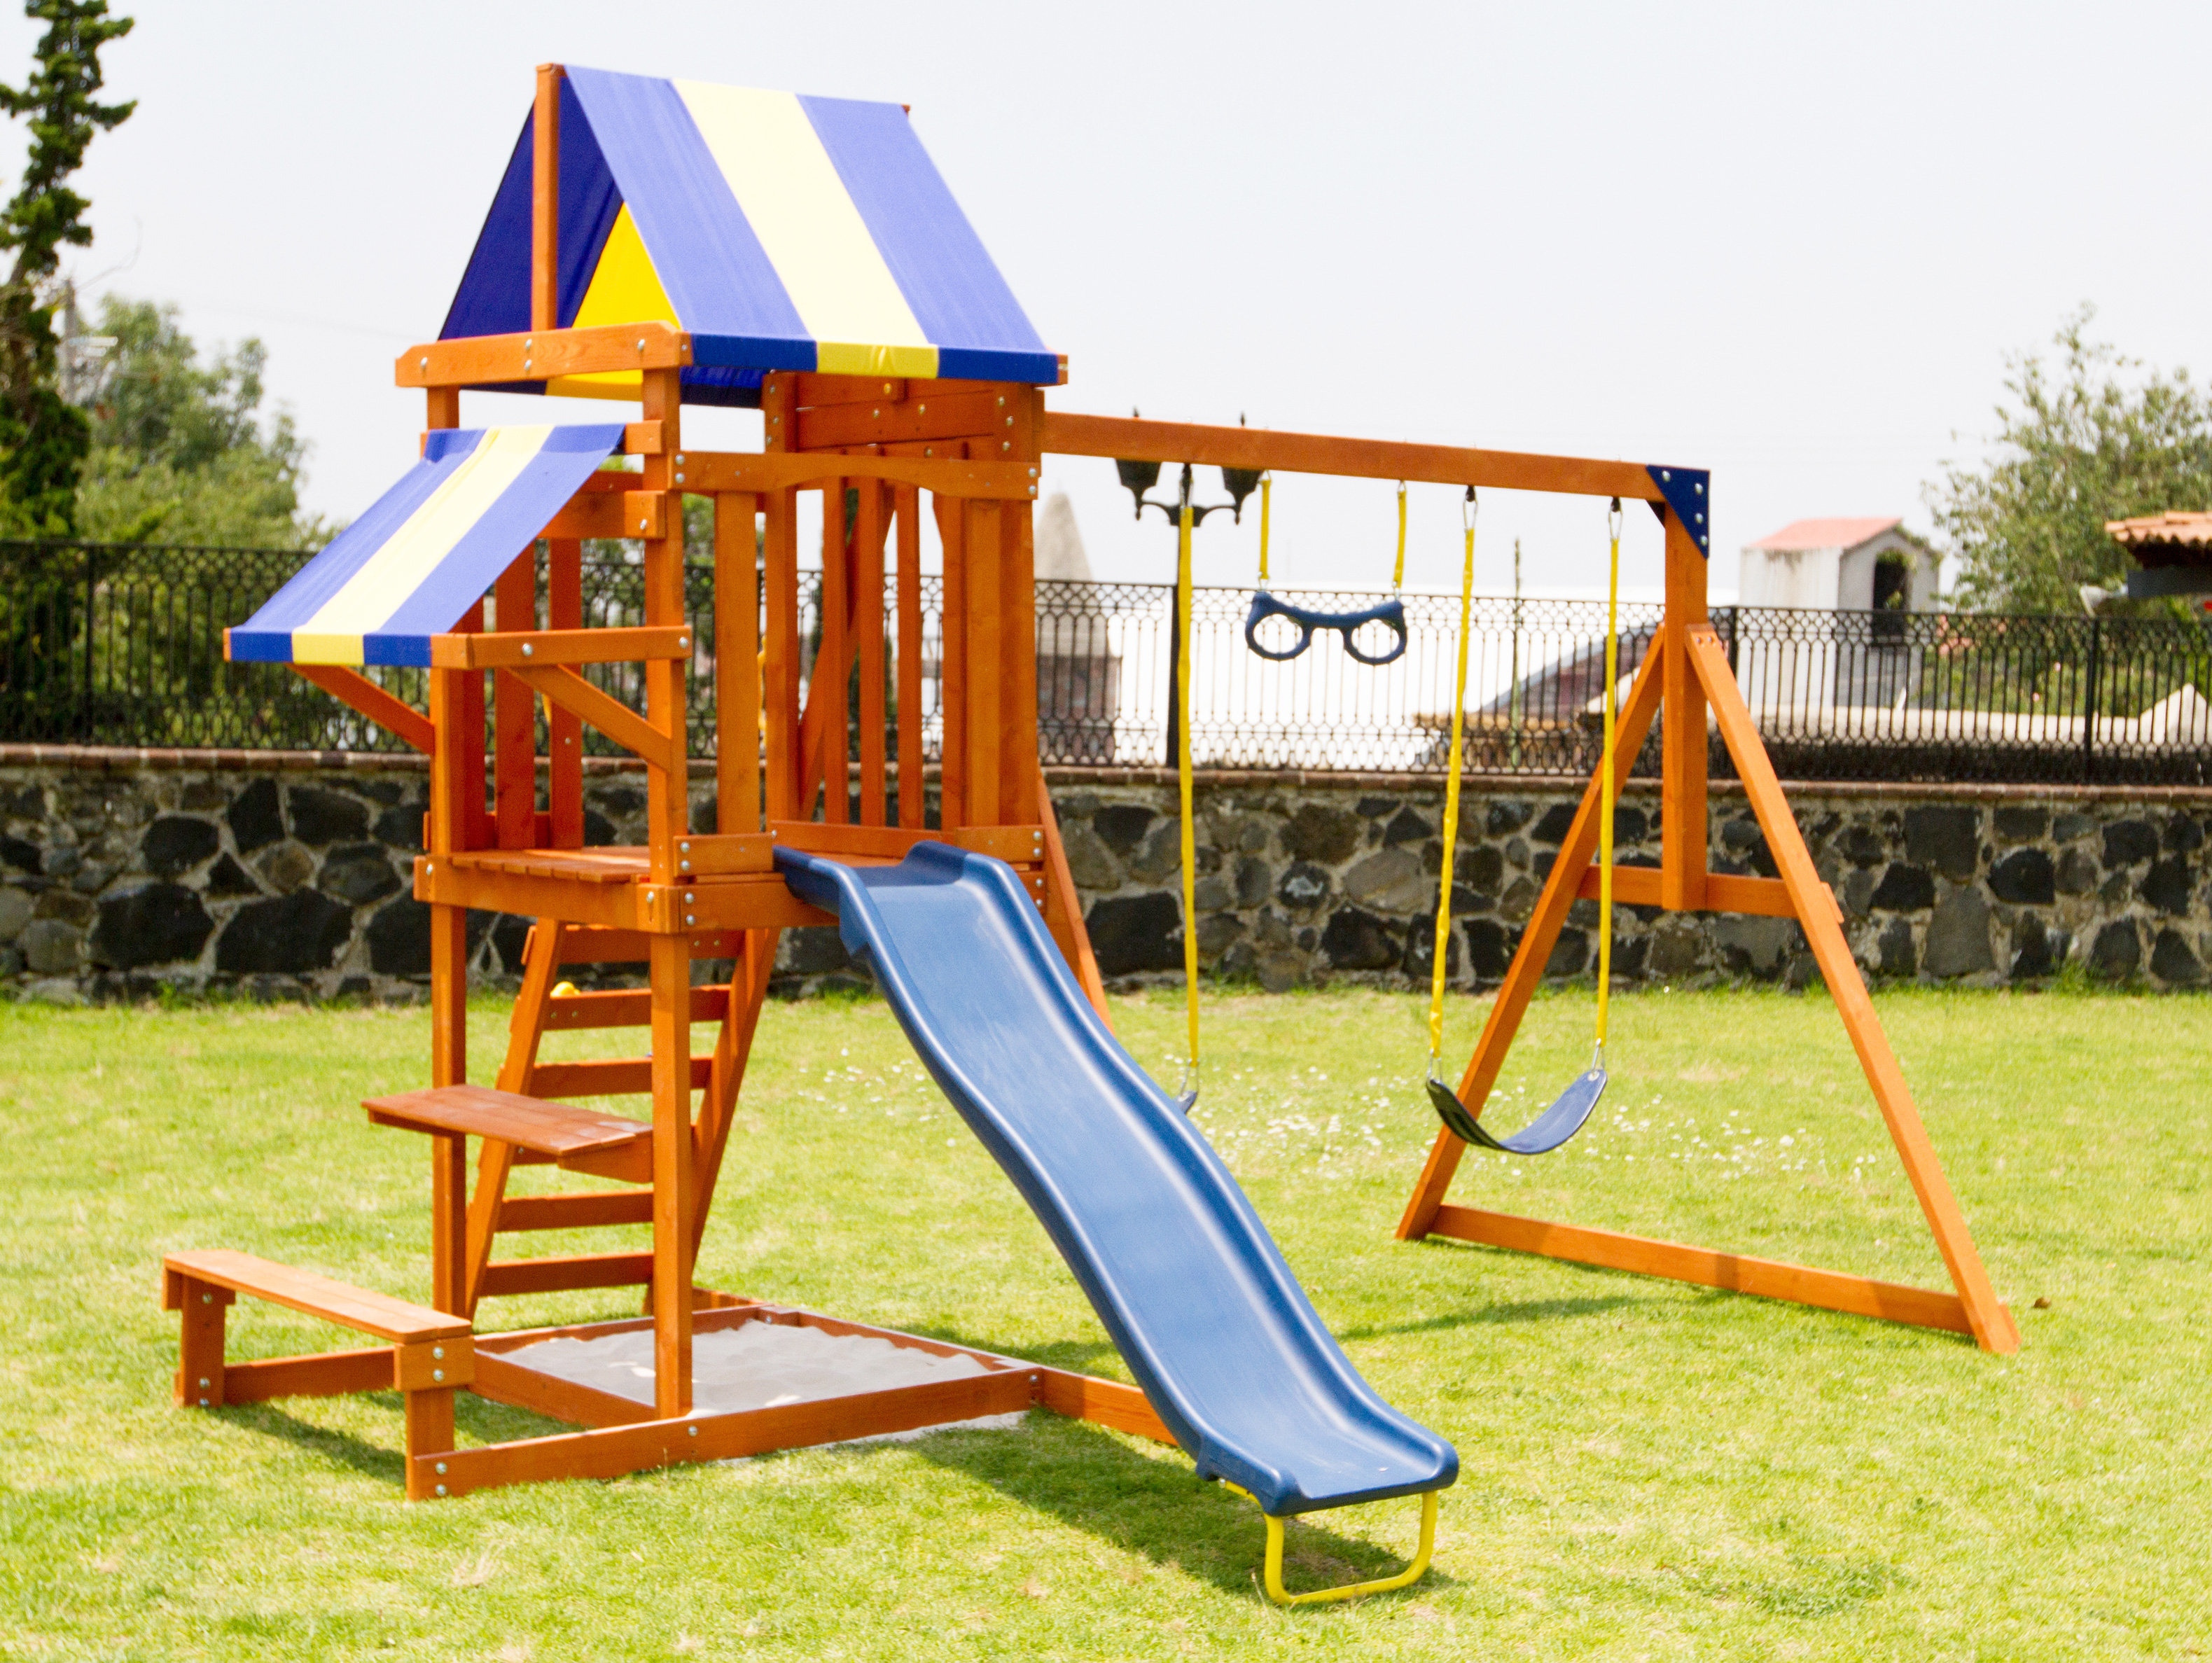 Sunnyslope Wooden Swing Set Sportspower